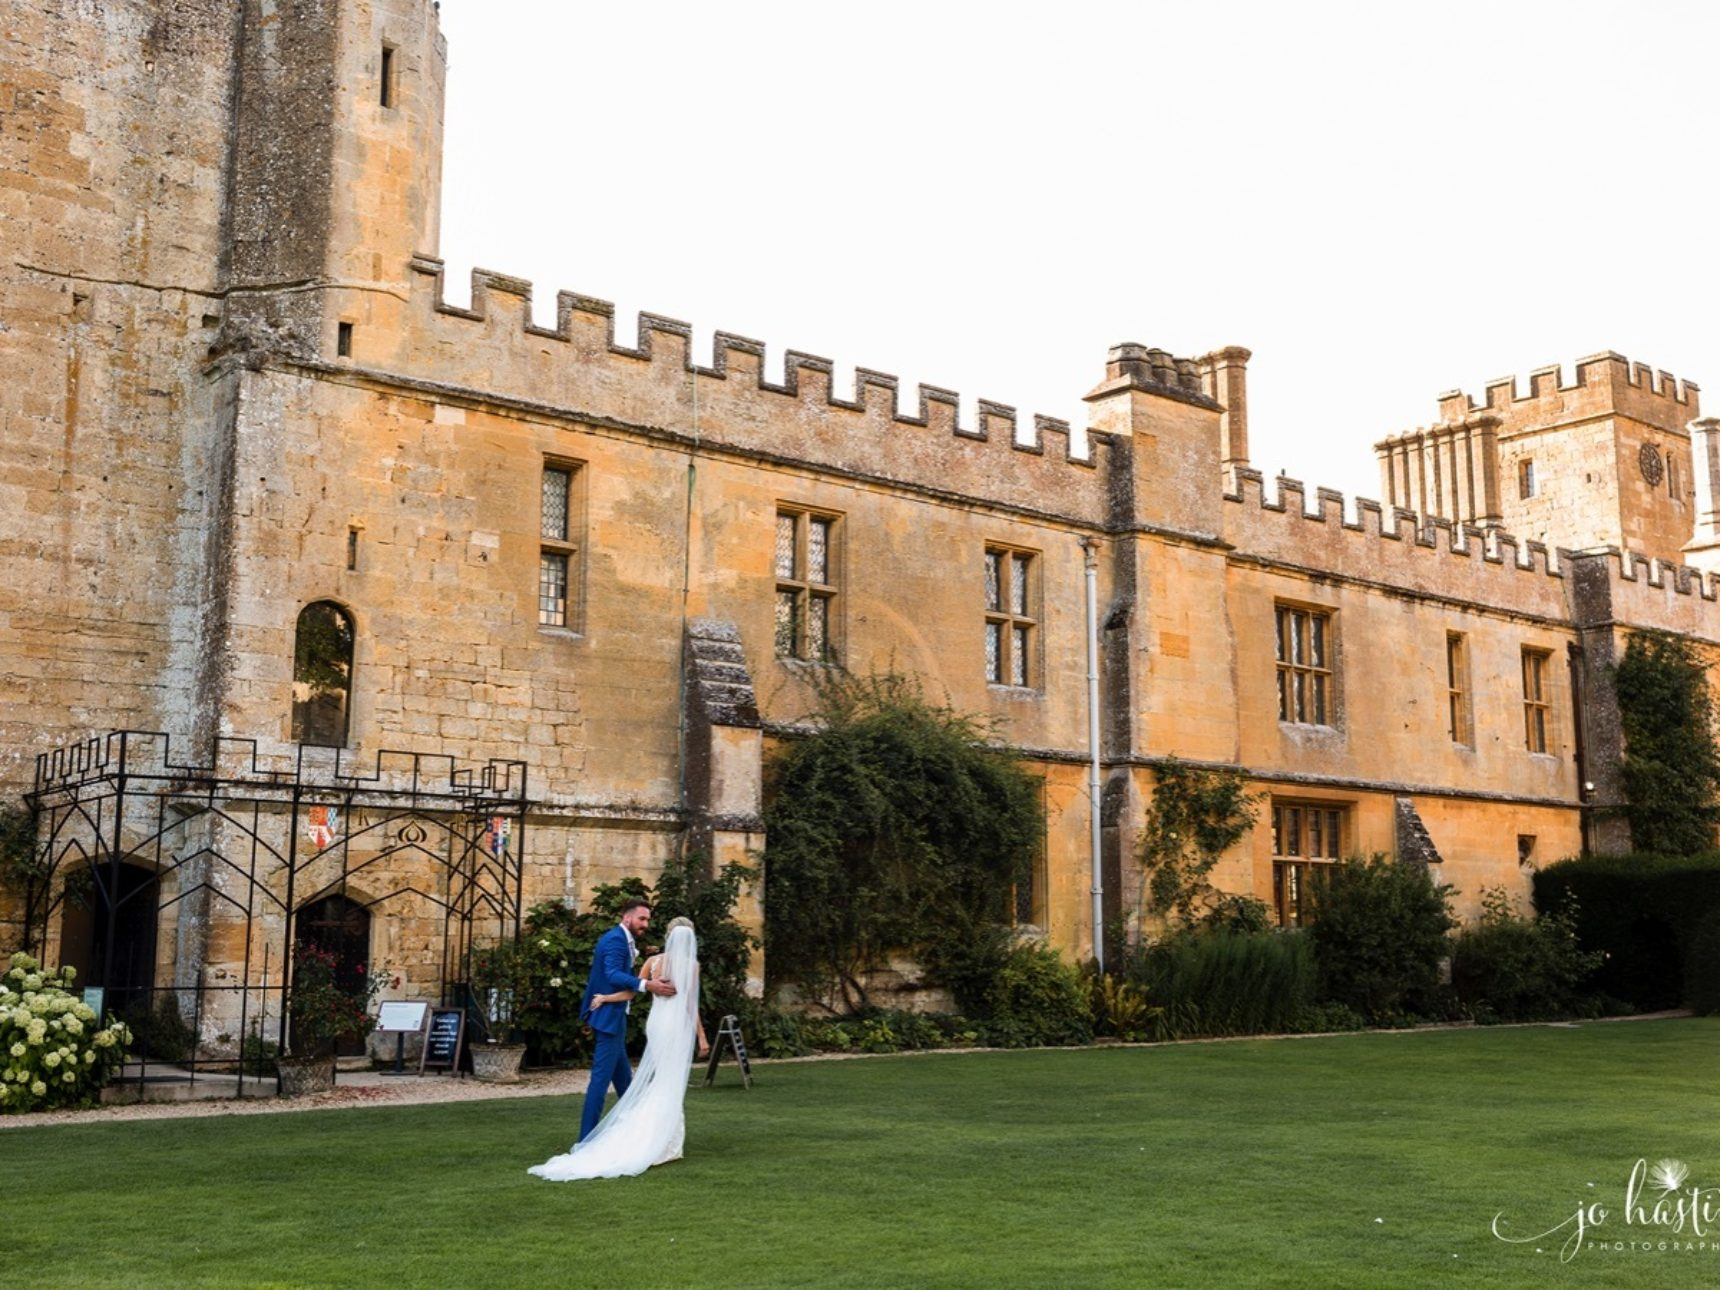 Wedding couple walking along Mulberry Lawn with Castle backdrop